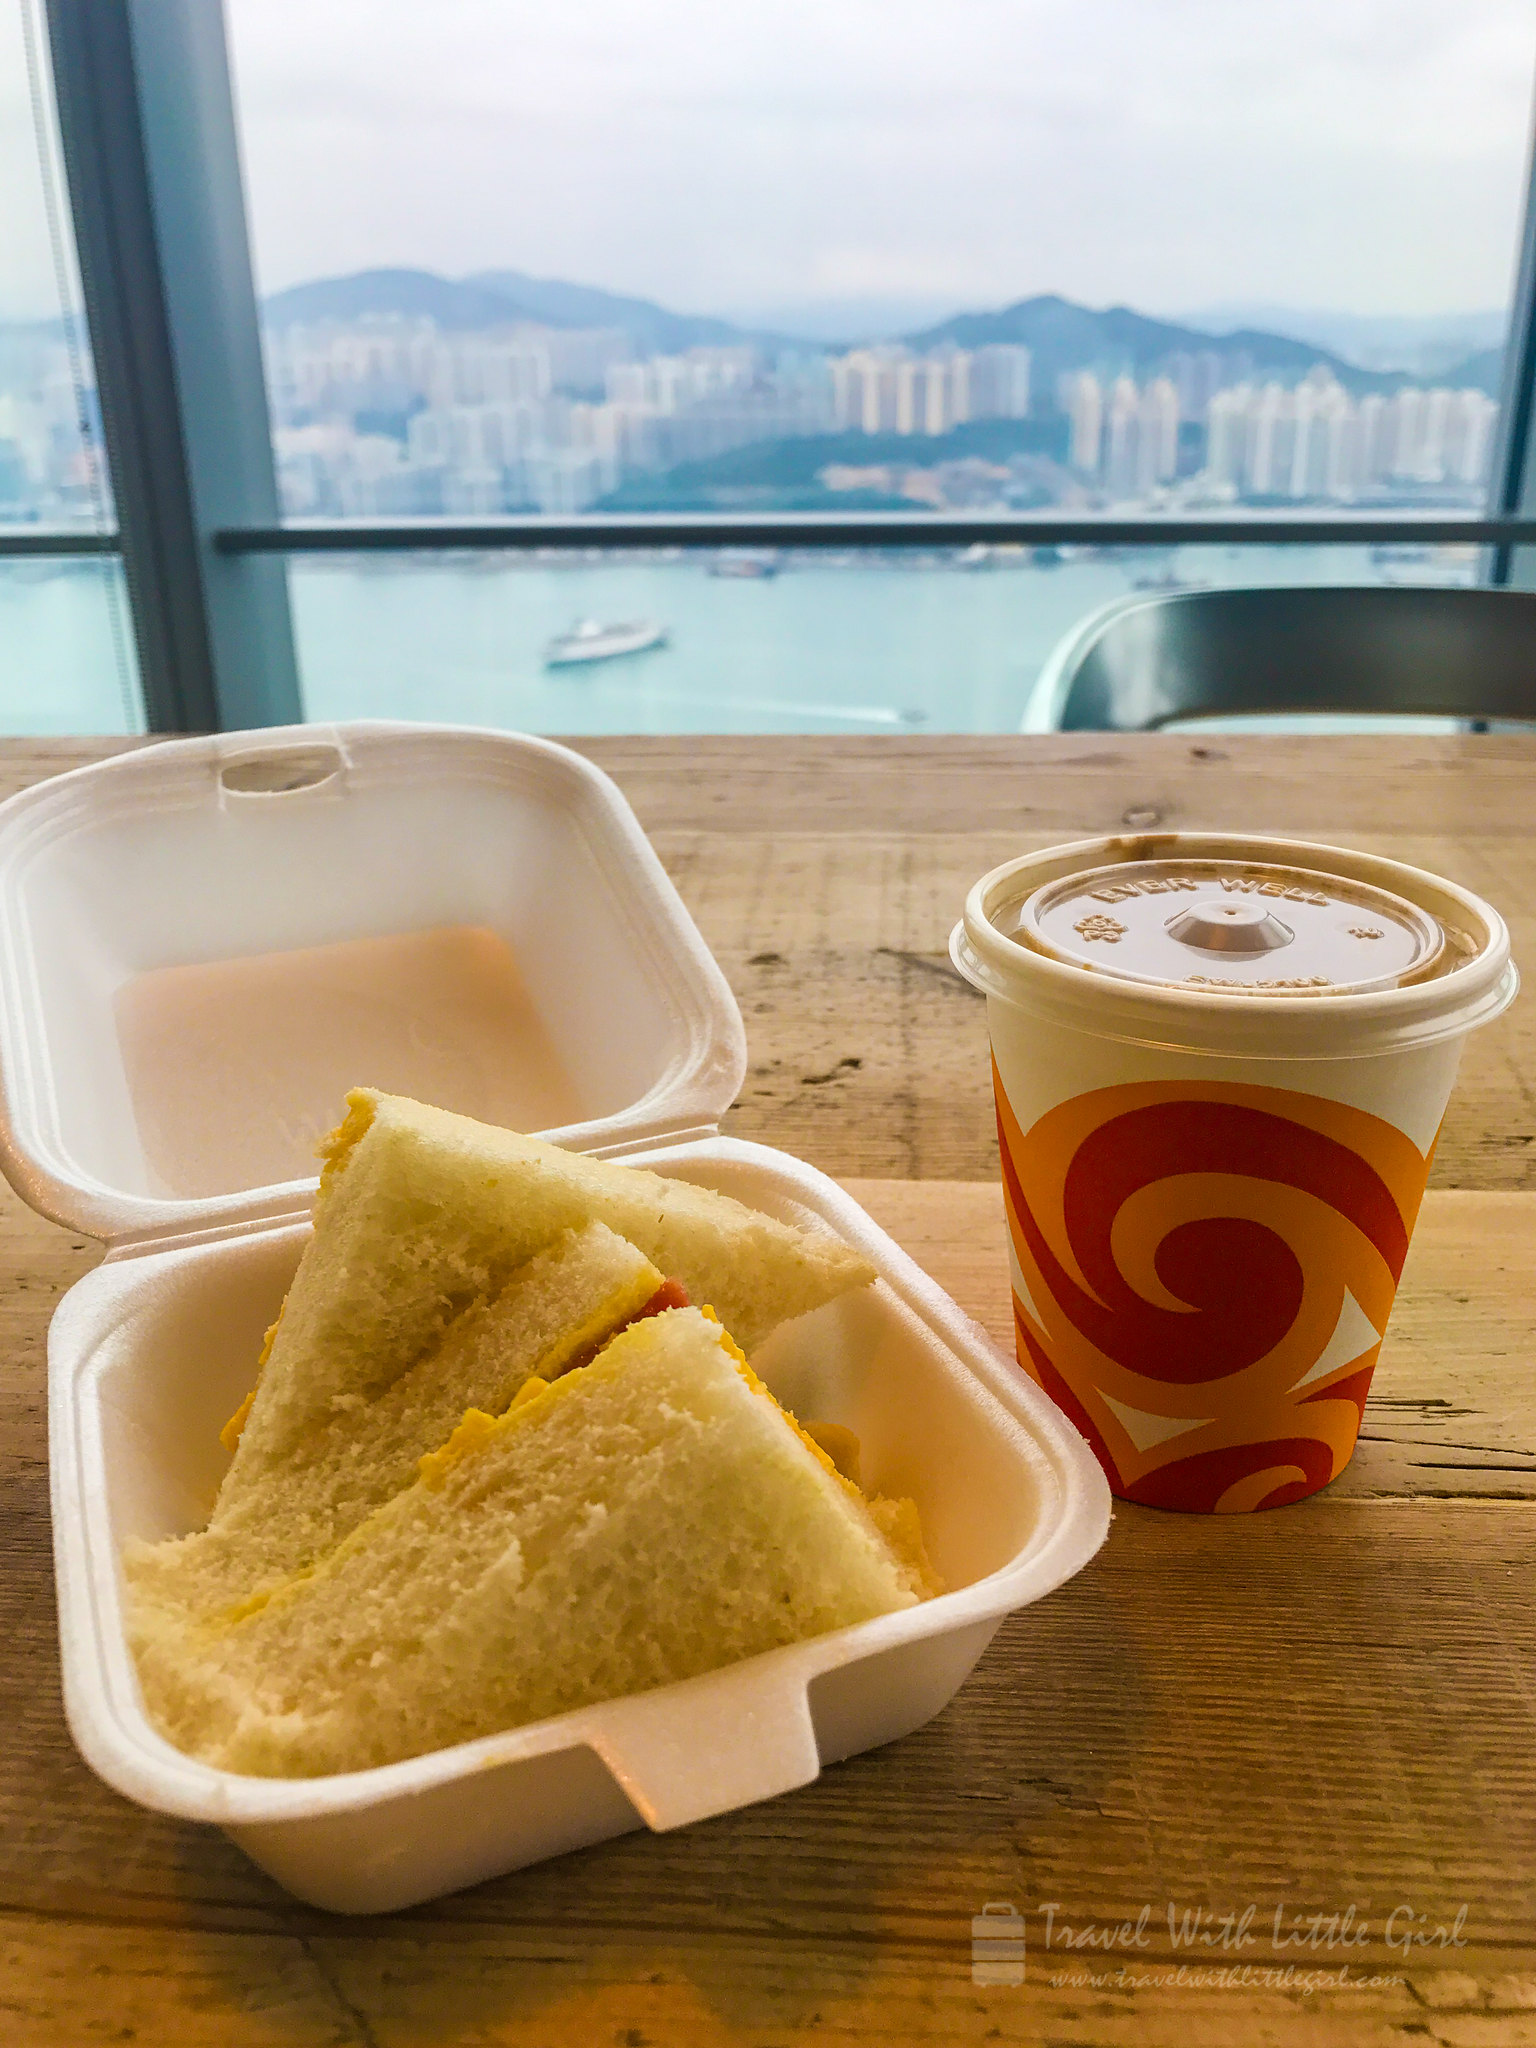 龍鳳冰室 早餐 Lung Fung Cafe takeaway breakfast